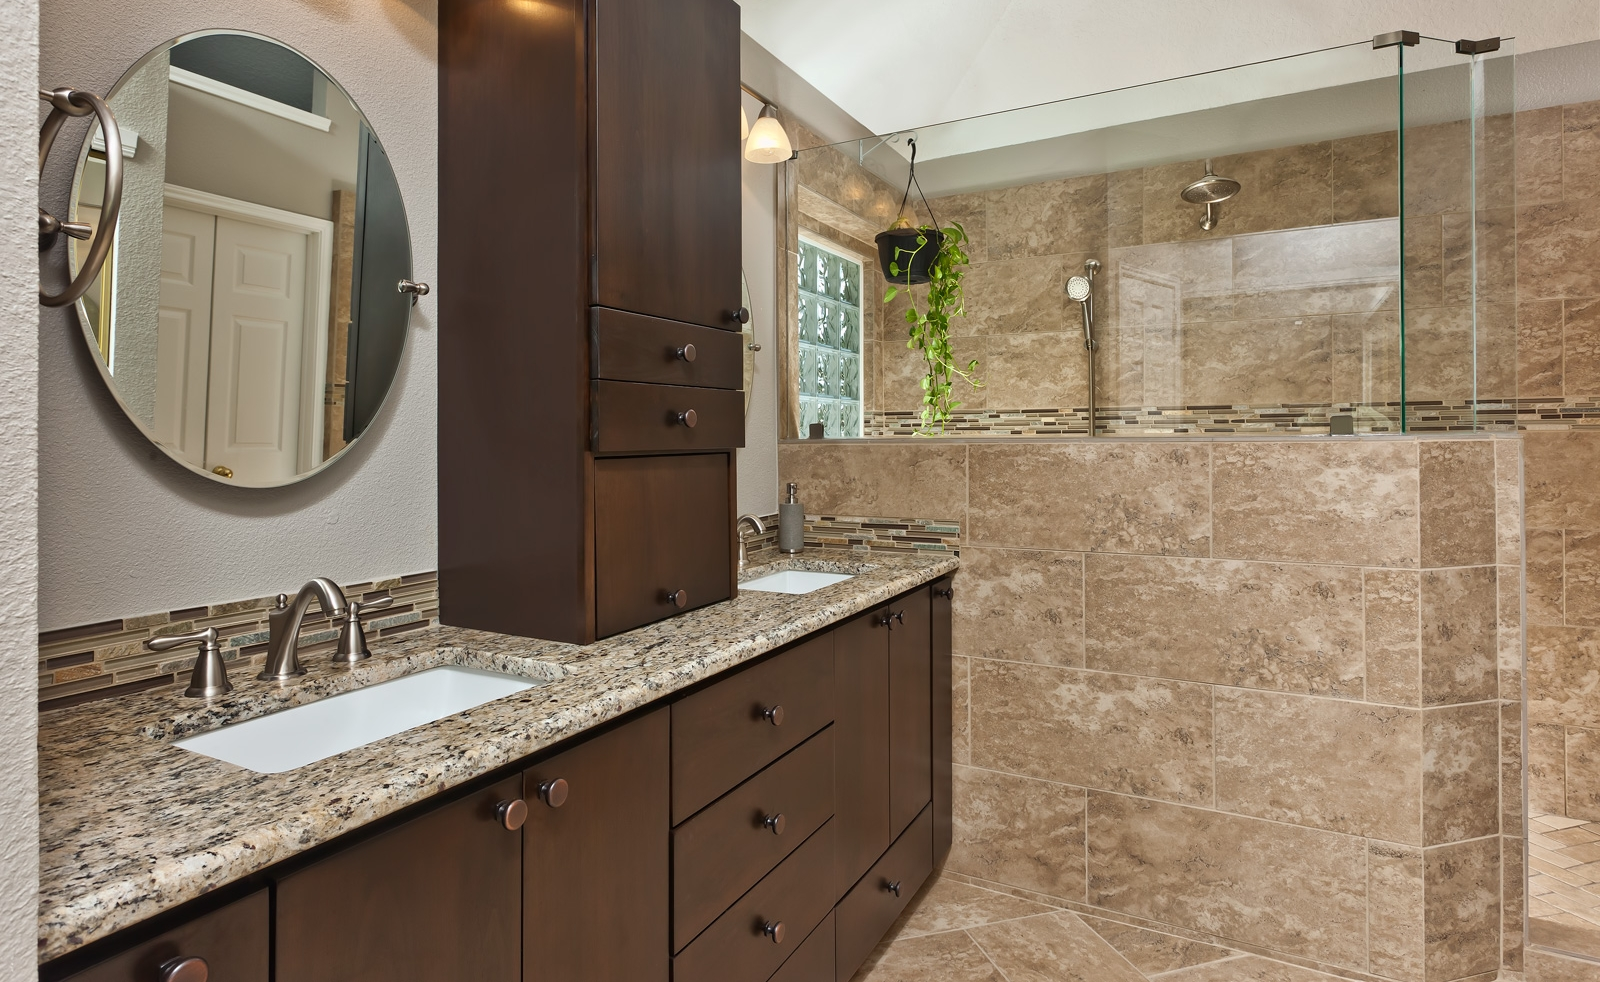 San Antonio Bathroom Remodel Fascinating Home Remodel San Antonio Tx  Bathroom & Kitchen Remodeling Inspiration